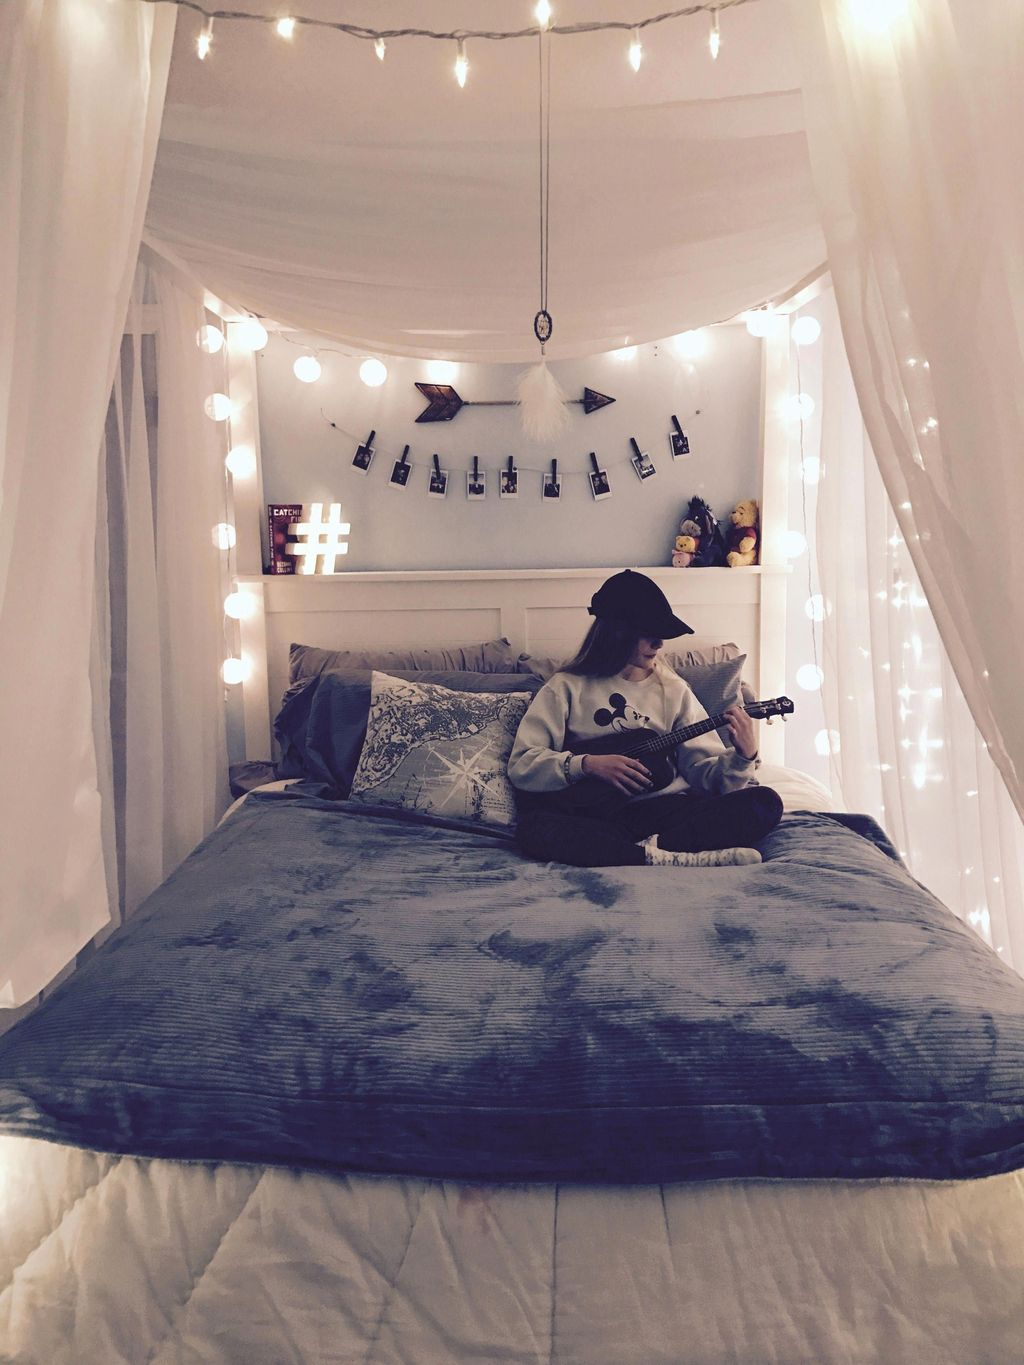 The Best DIY Bedroom Decor Ideas You Have To Try 20